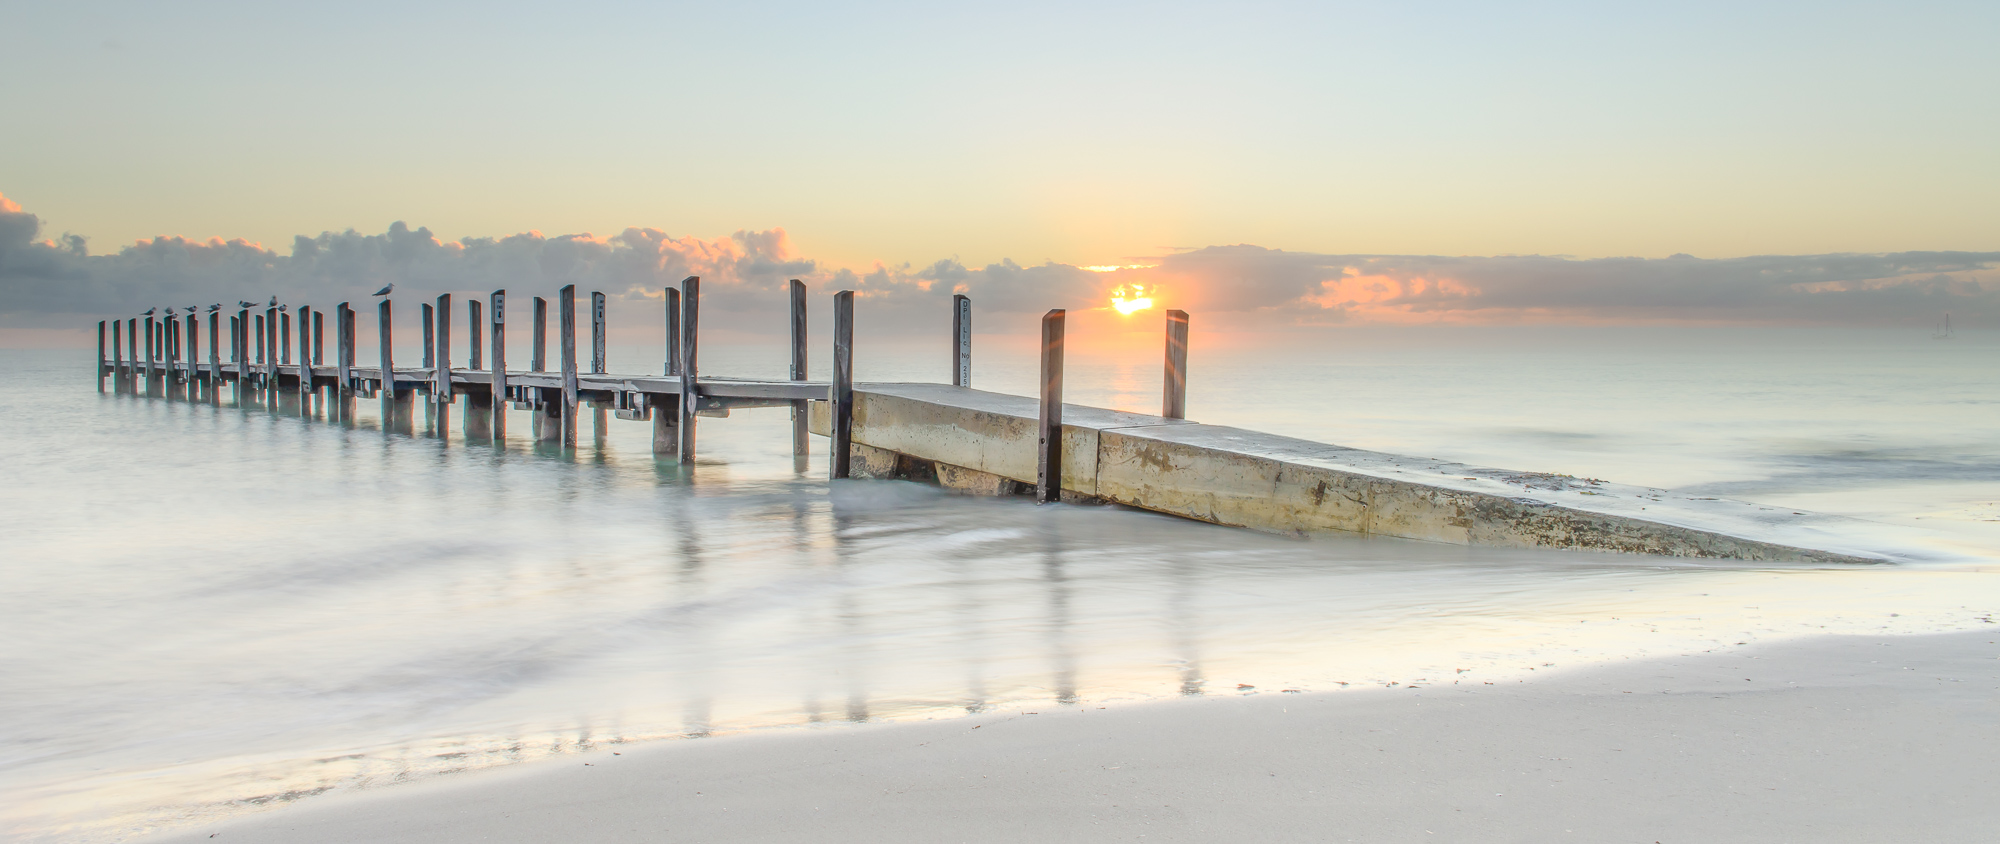 QUNIDALUP JETTY